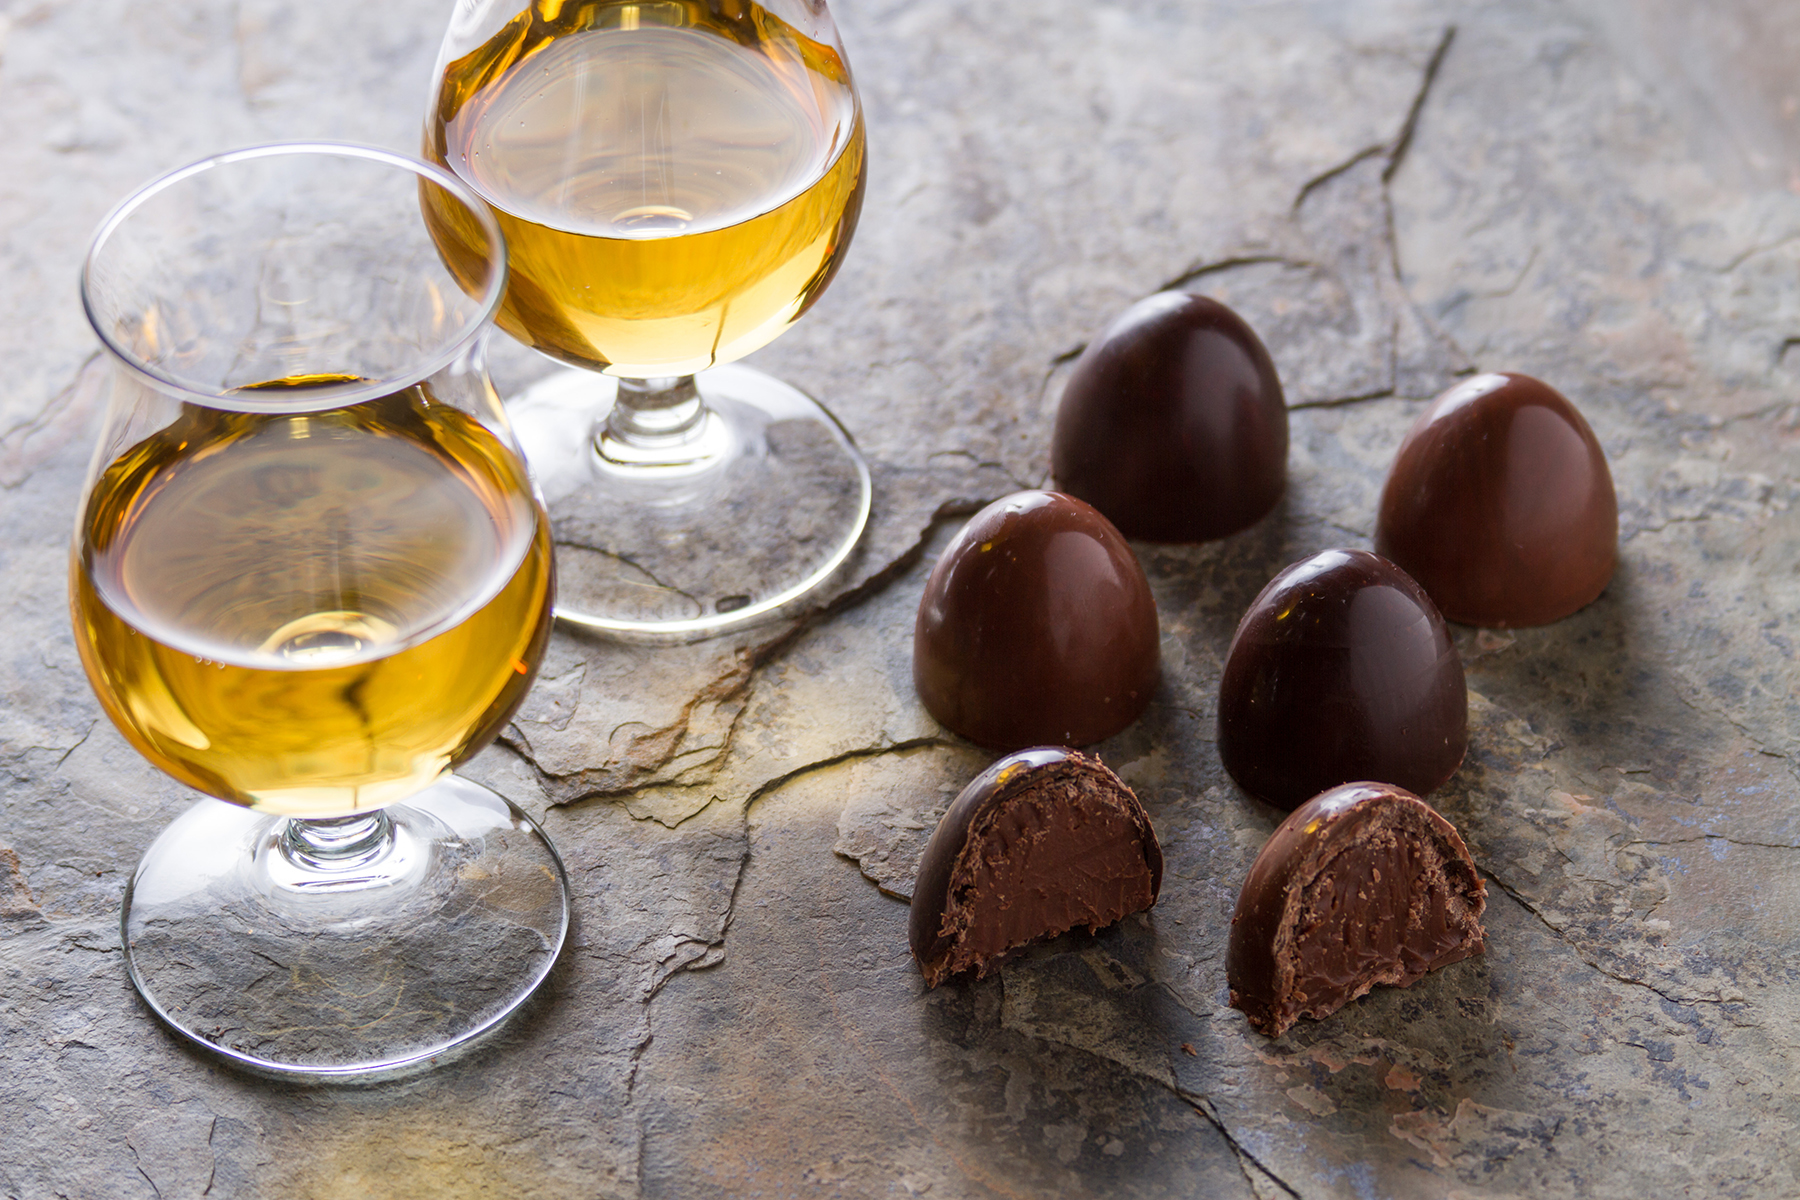 Whisky glasses and chocolates. Image courtesy Shutterstock.